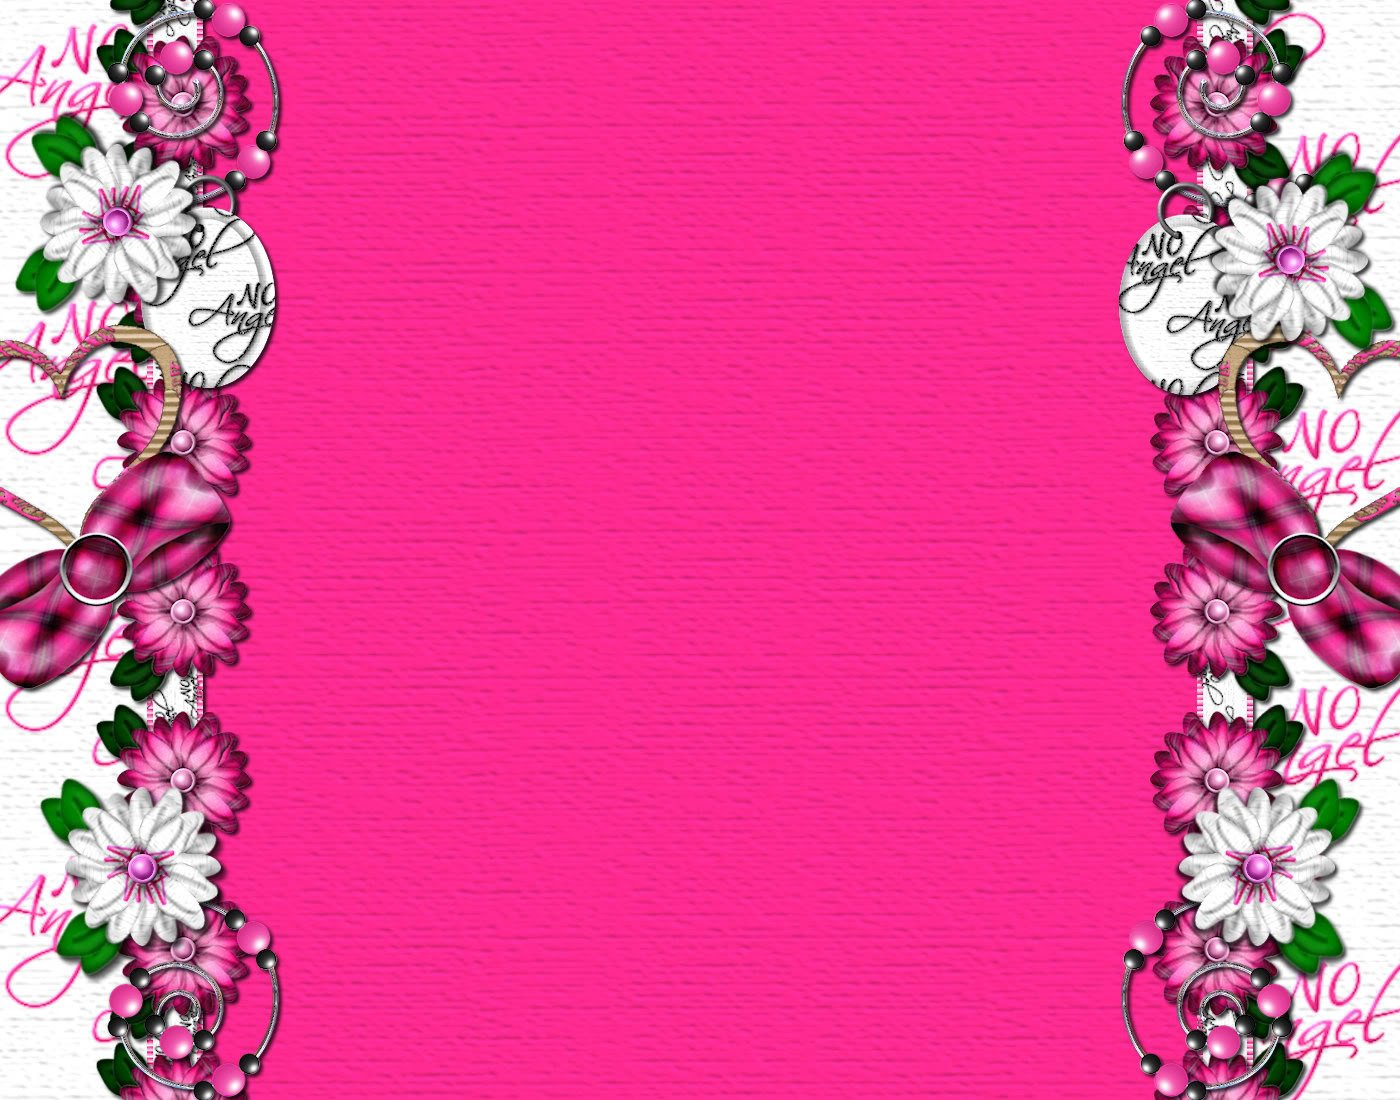 Barbie Doll Birthday Frame Backgrounds, Photos And Templates